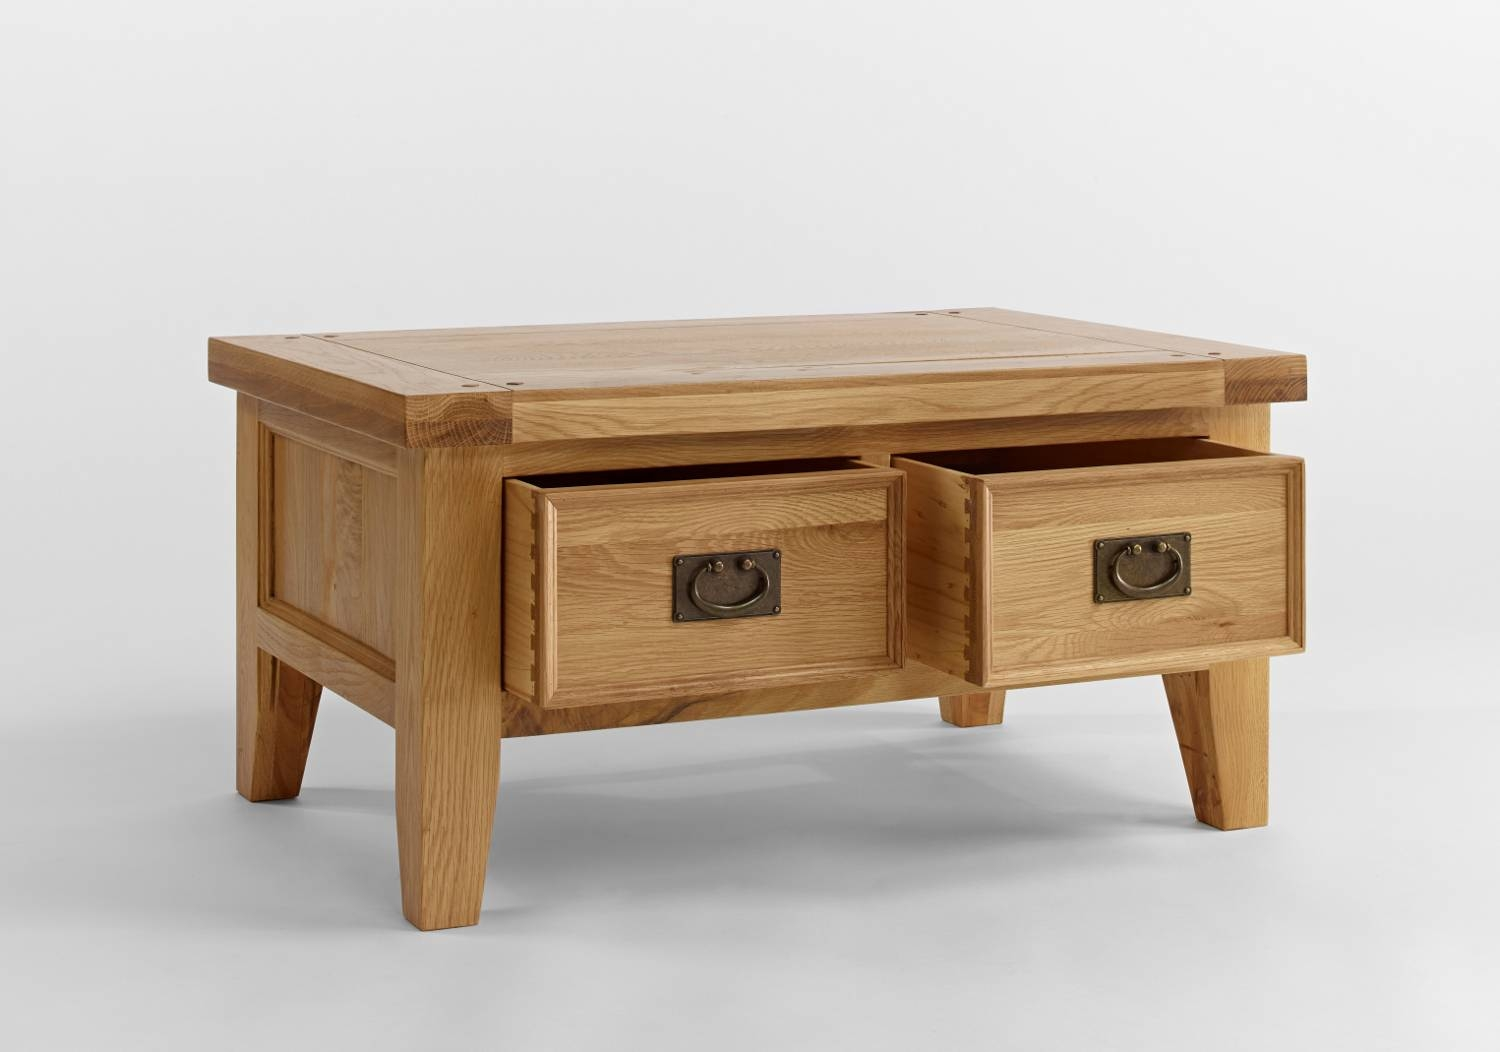 Elegant Small Oak Coffee Table With Storage 2 Drawers Underneath Regarding Small Oak Coffee Tables (View 3 of 15)